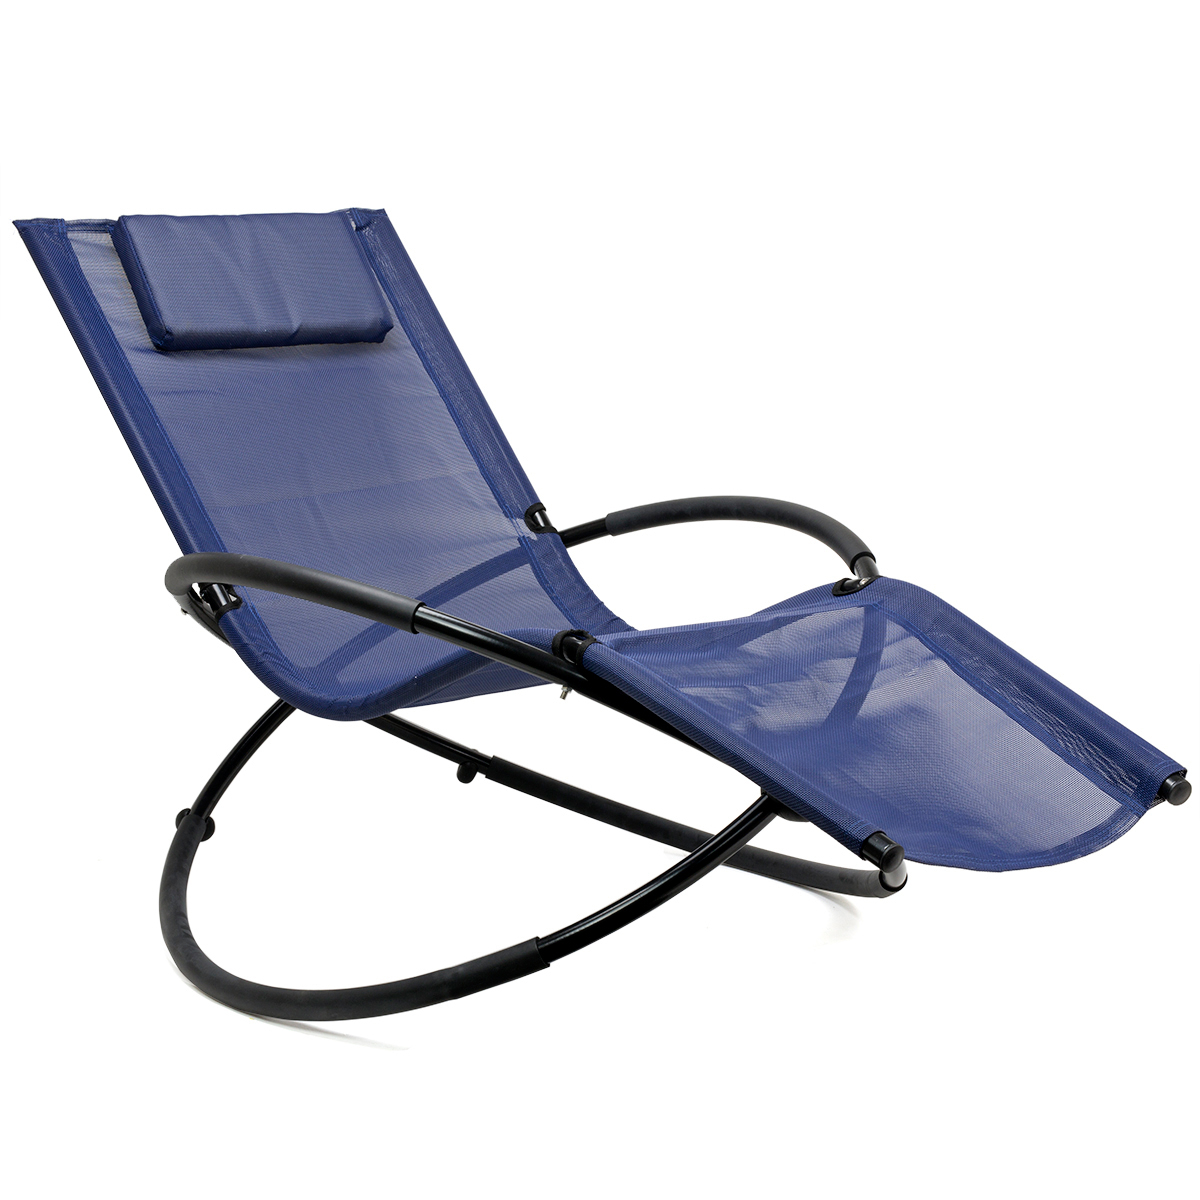 Orbital Patio Lounger Rocking Chairs Intended For Preferred Details About Folding Orbit Zero Gravity Chair Patio Garden Outdoor Lounger Rocking Navy (View 3 of 25)